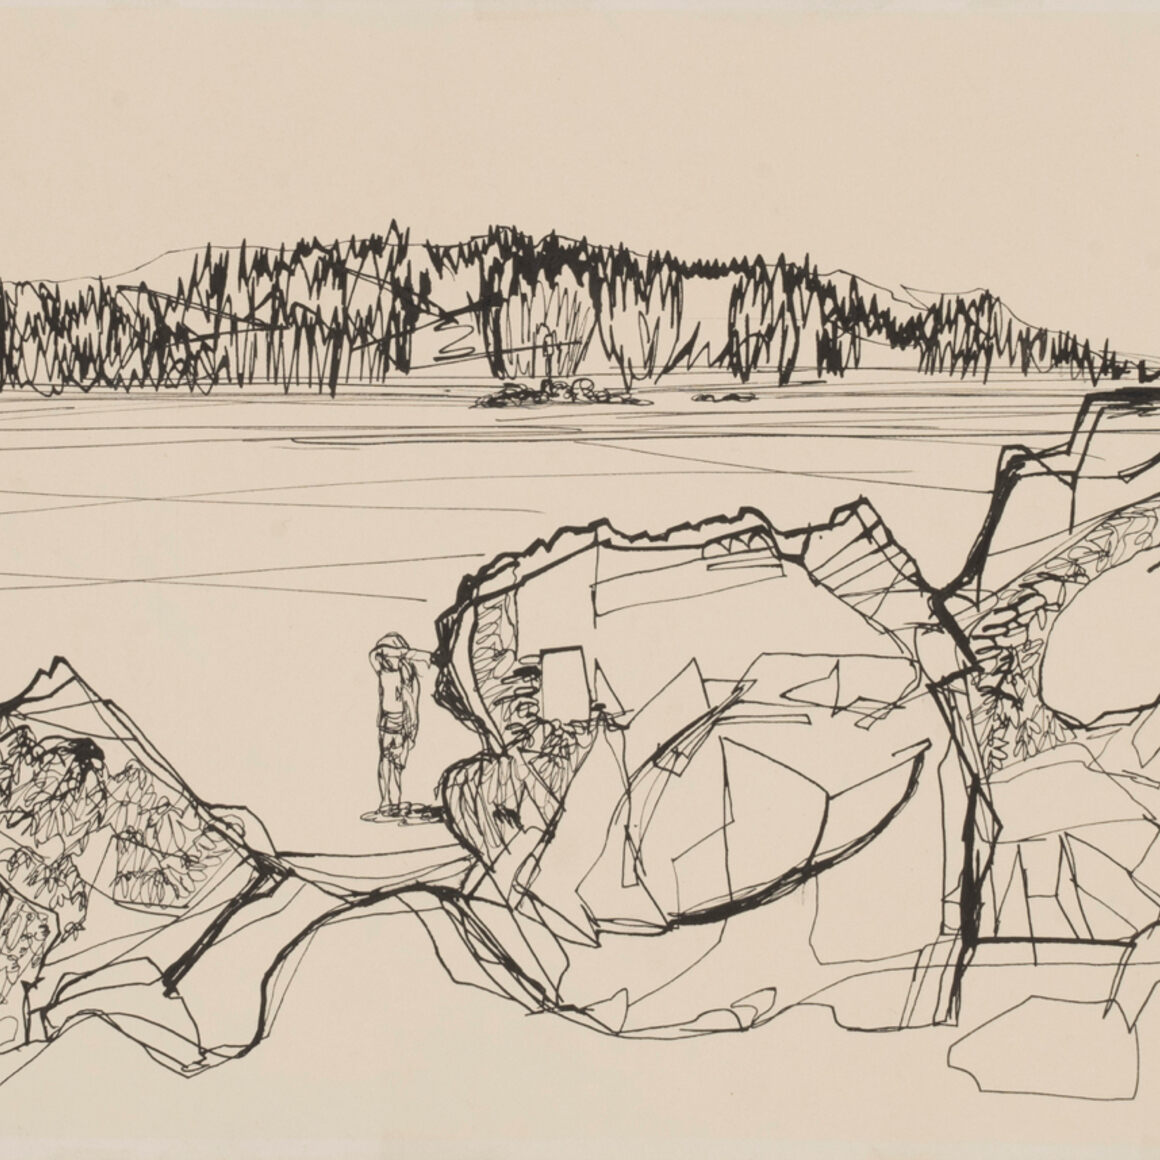 Jane Hamilton Hovde, Figure in Landscape, 1968. Ink on paper. Henry Art Gallery, University of Washington, Seattle, gift of Katherine and Karin Hovde, daughters of the artist, 2018.330. © The Estate of Jane Hamilton Hovde.